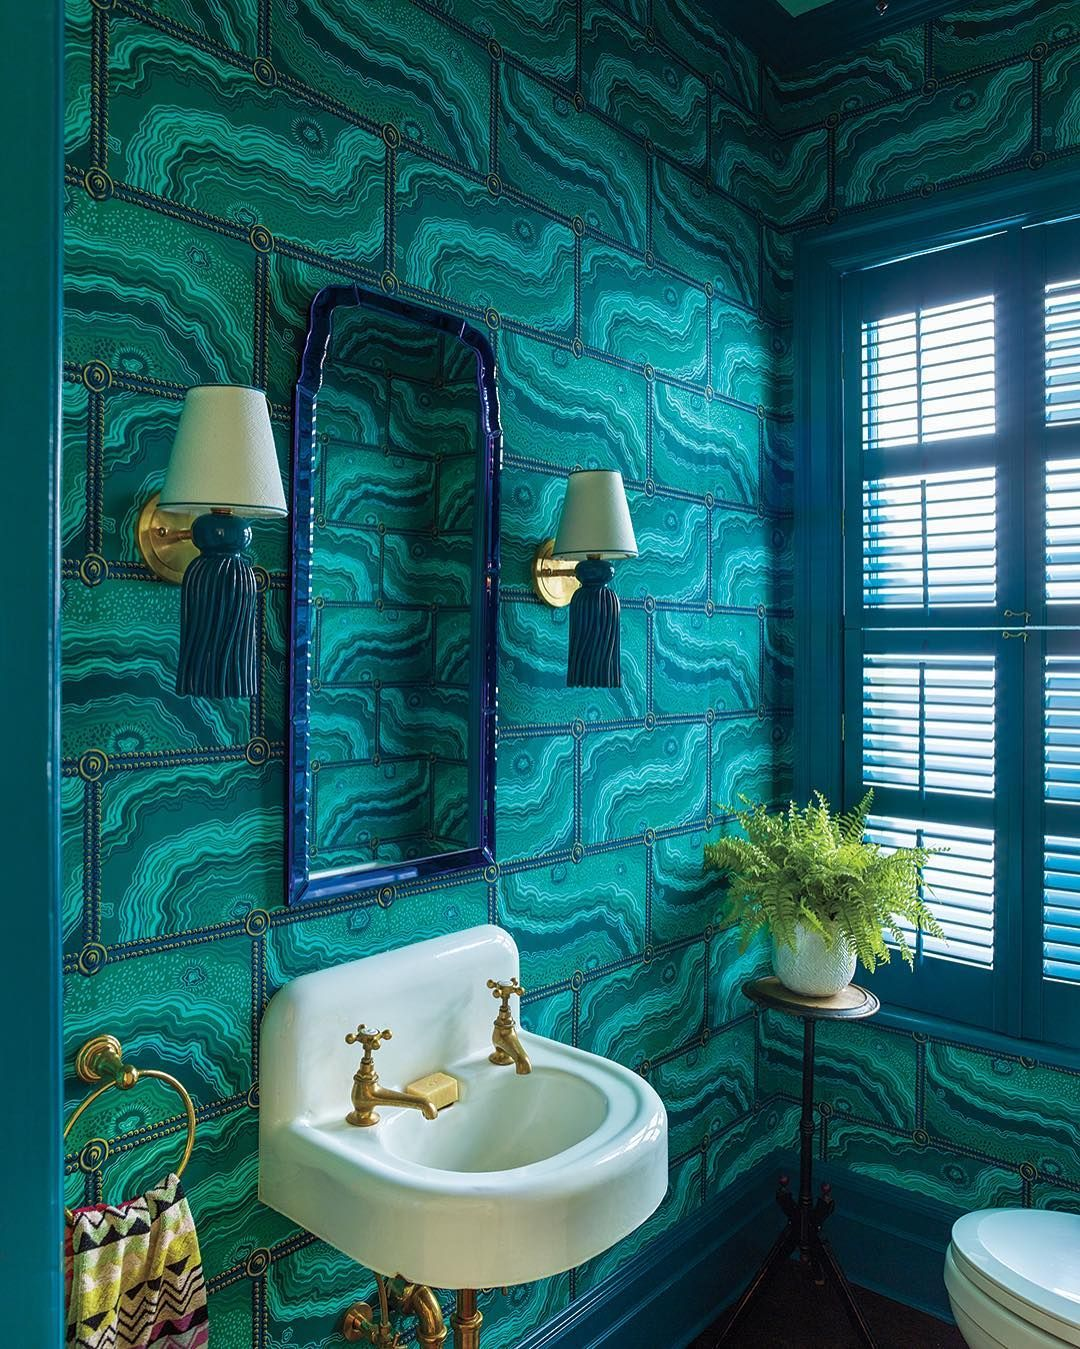 Cottages Gardens On Instagram It S An Emerald Dream In This Beautifully Restored Powder Room Featuring Col Bathroom Design Jewel Tone Decor Powder Room